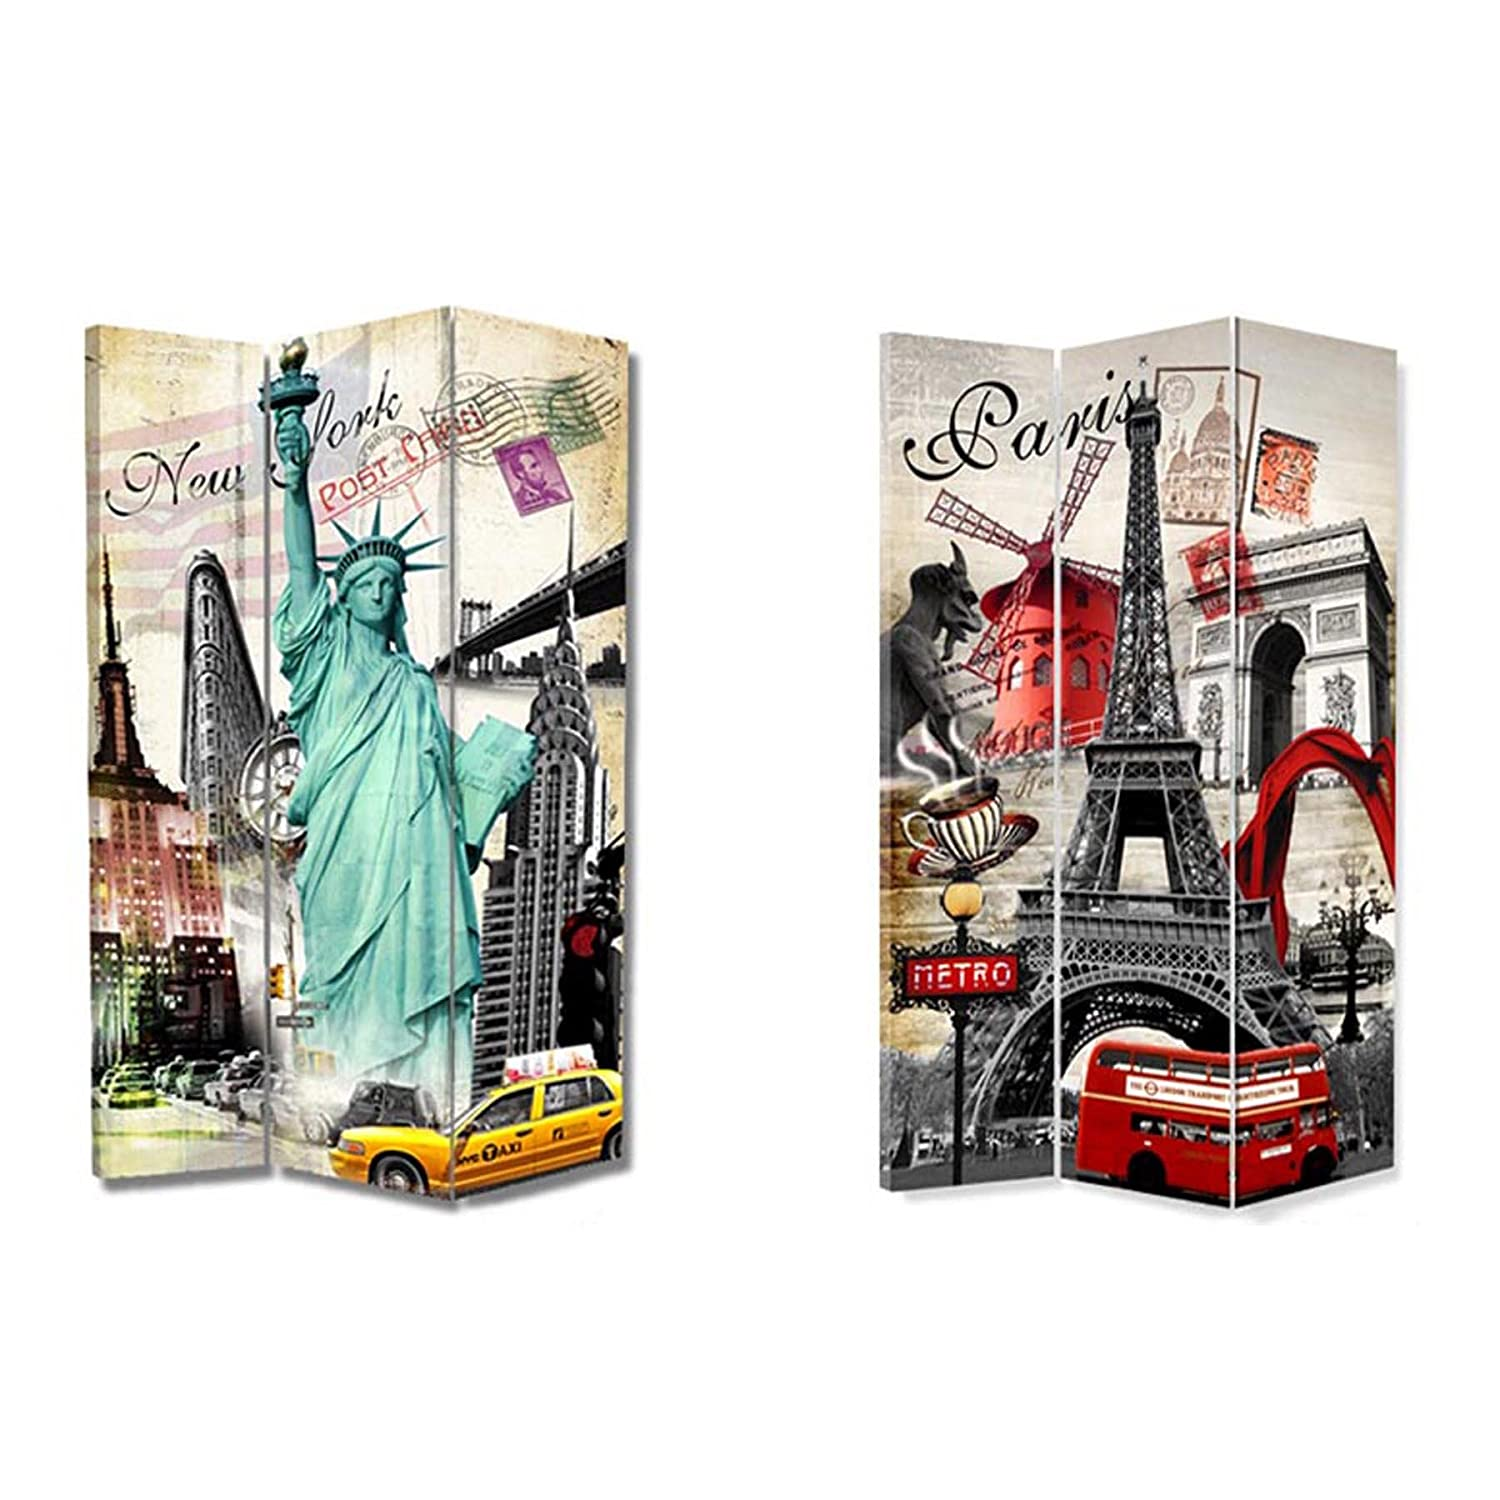 Lillyvale 6FT Tall 3 Panel 2 Fold Moulin Rouge & New York Room Divider Canvas Dressing Screen From